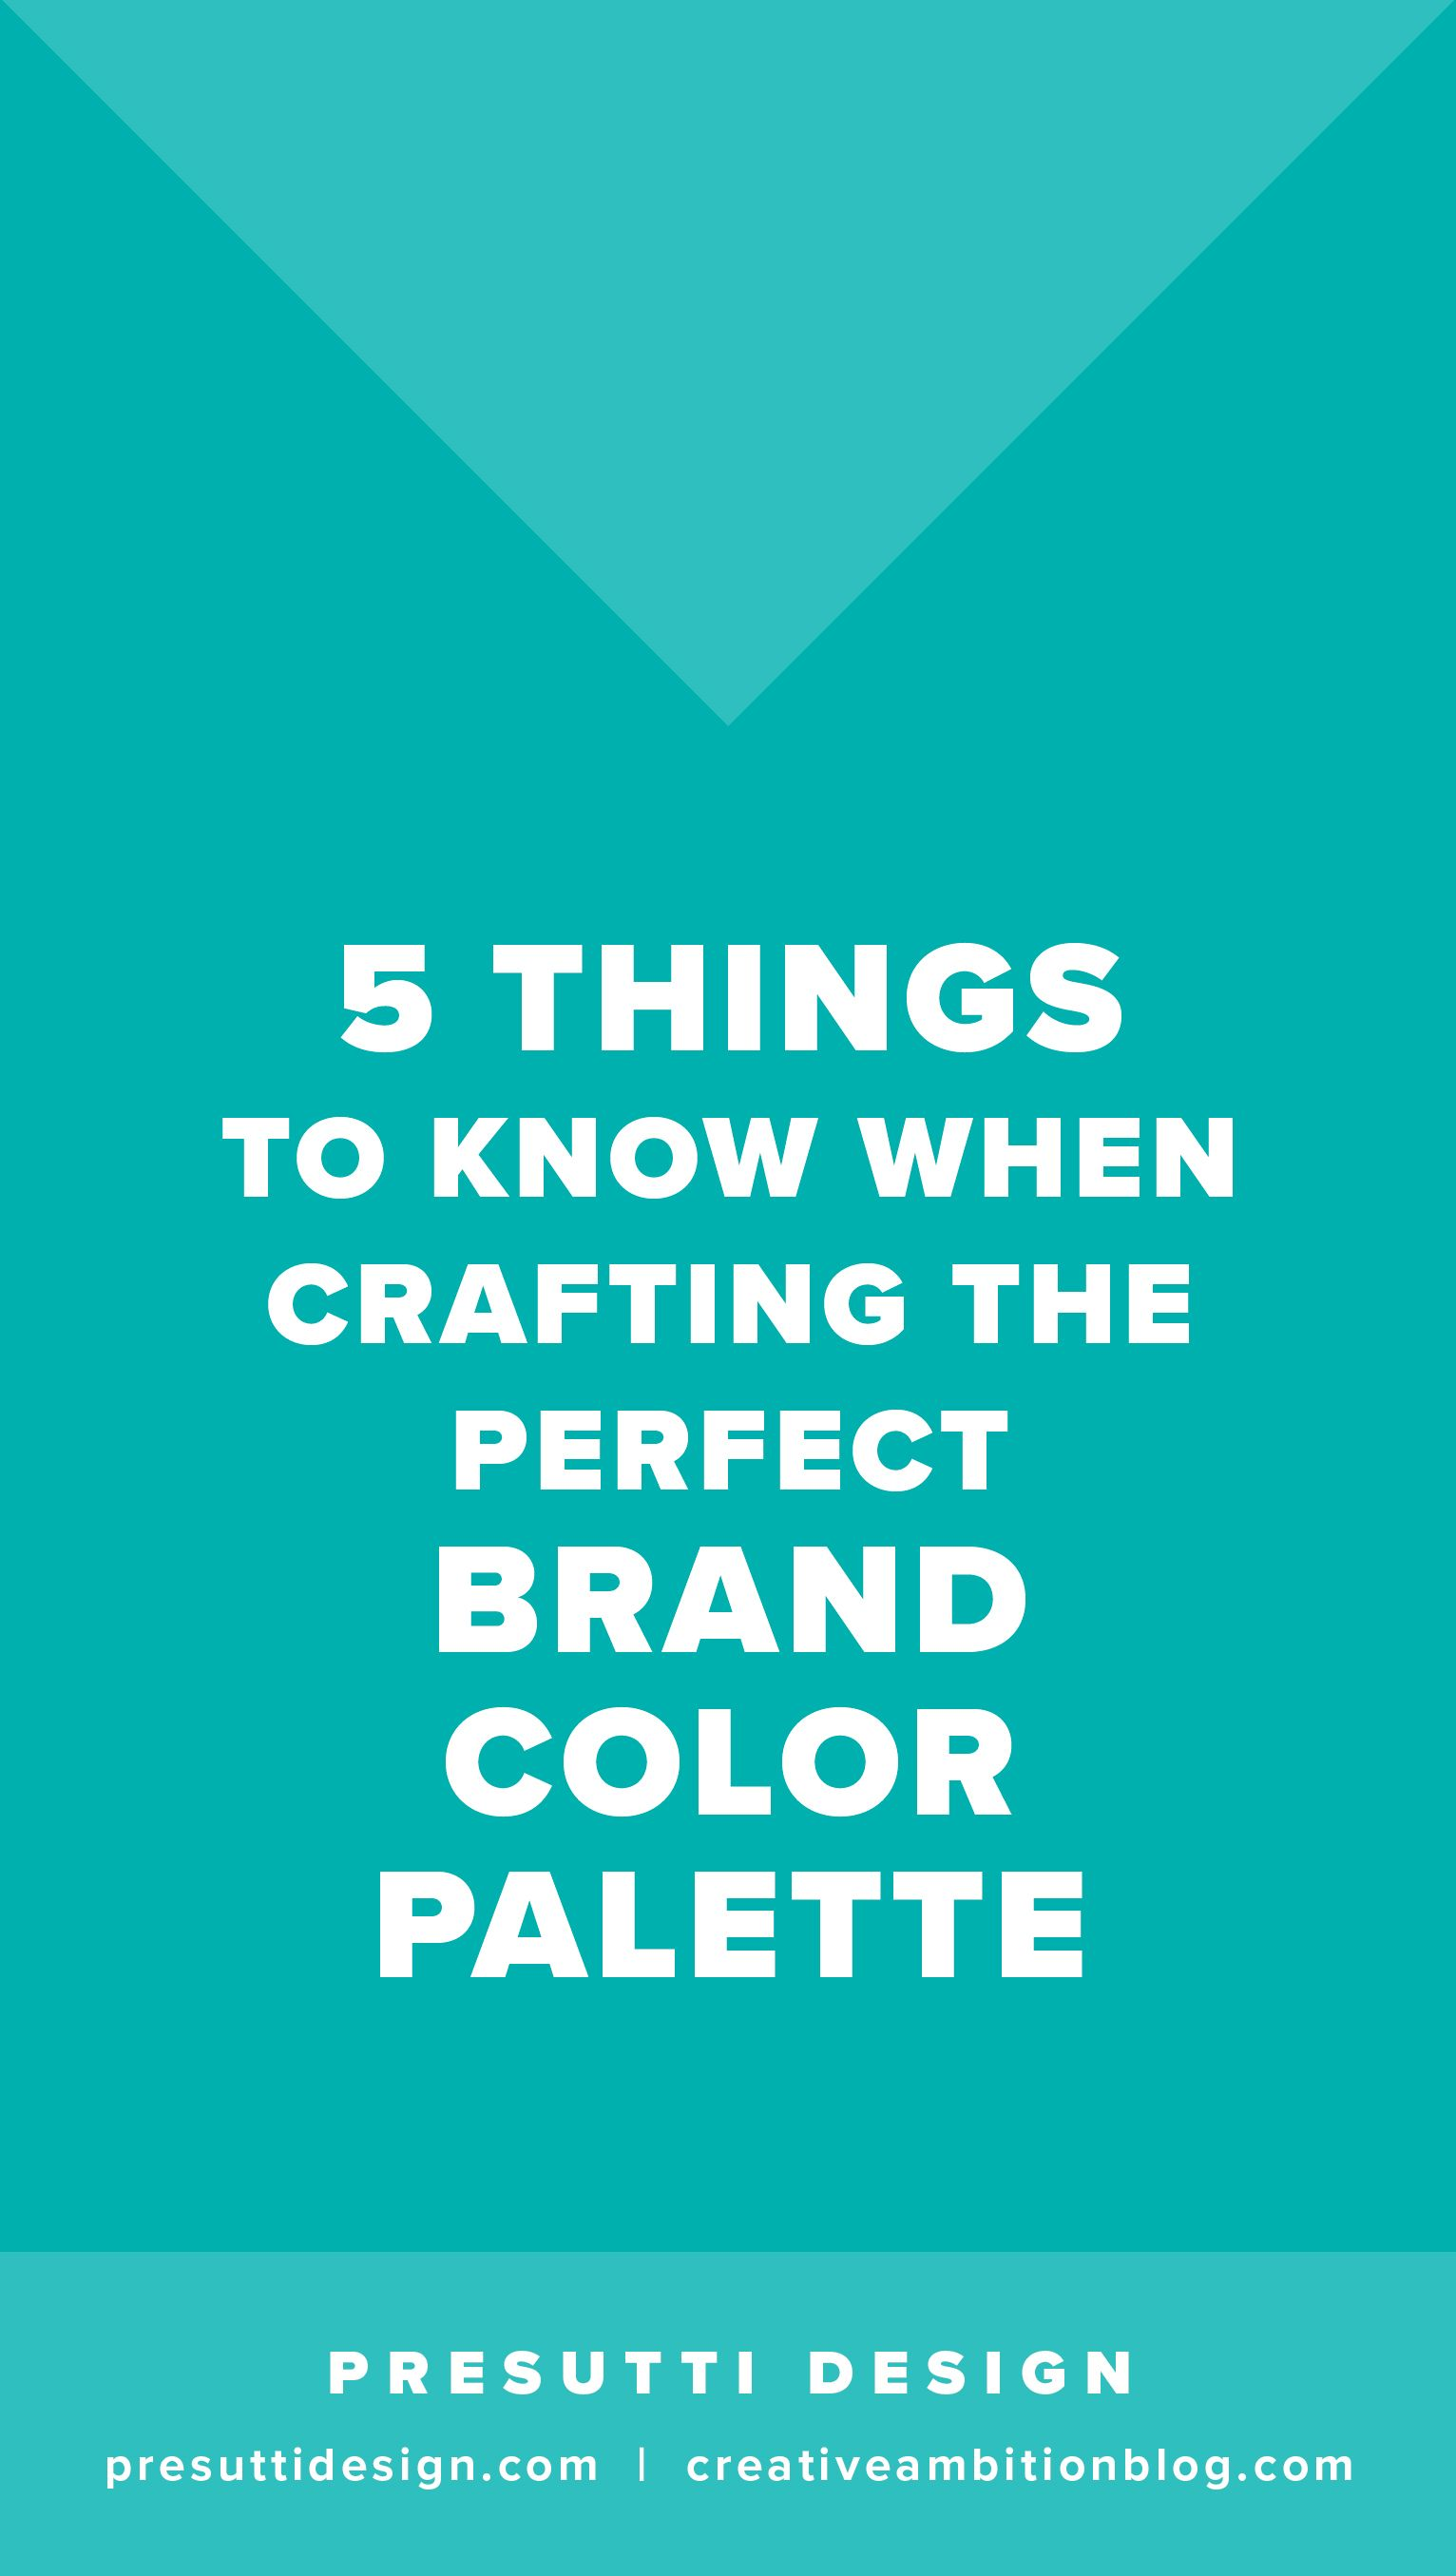 5 Things To Know When Crafting The Perfect Brand Color Palette